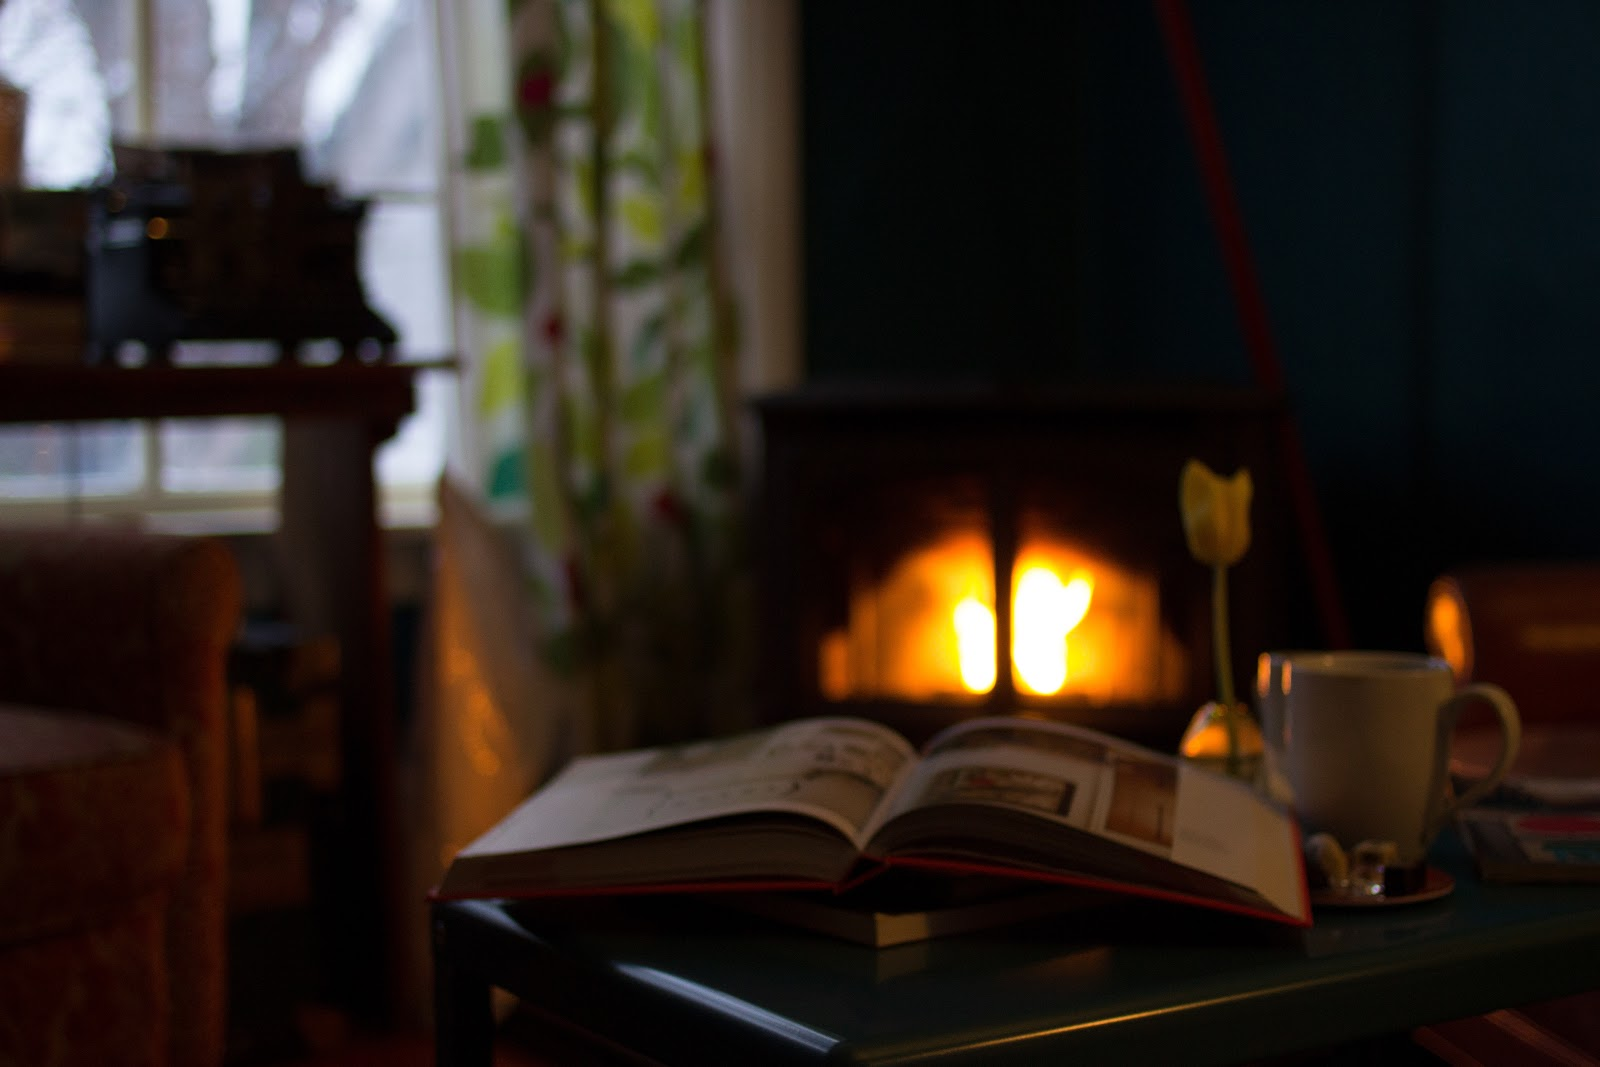 Five thigns to do besides the fire this Christmas